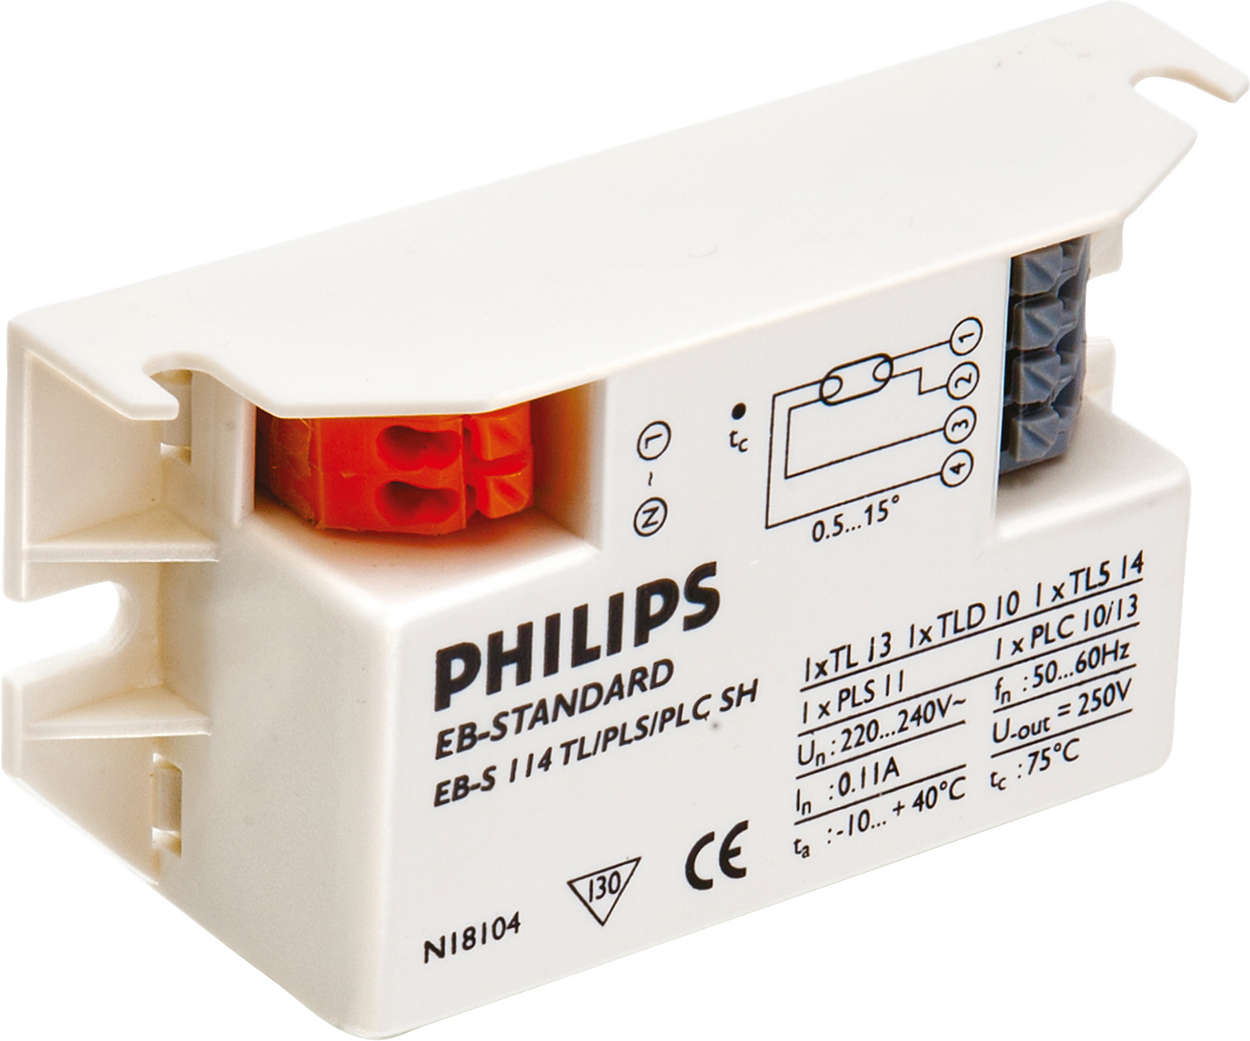 Micropower electronic ballast for TL/PL-S/-T/-C lamps